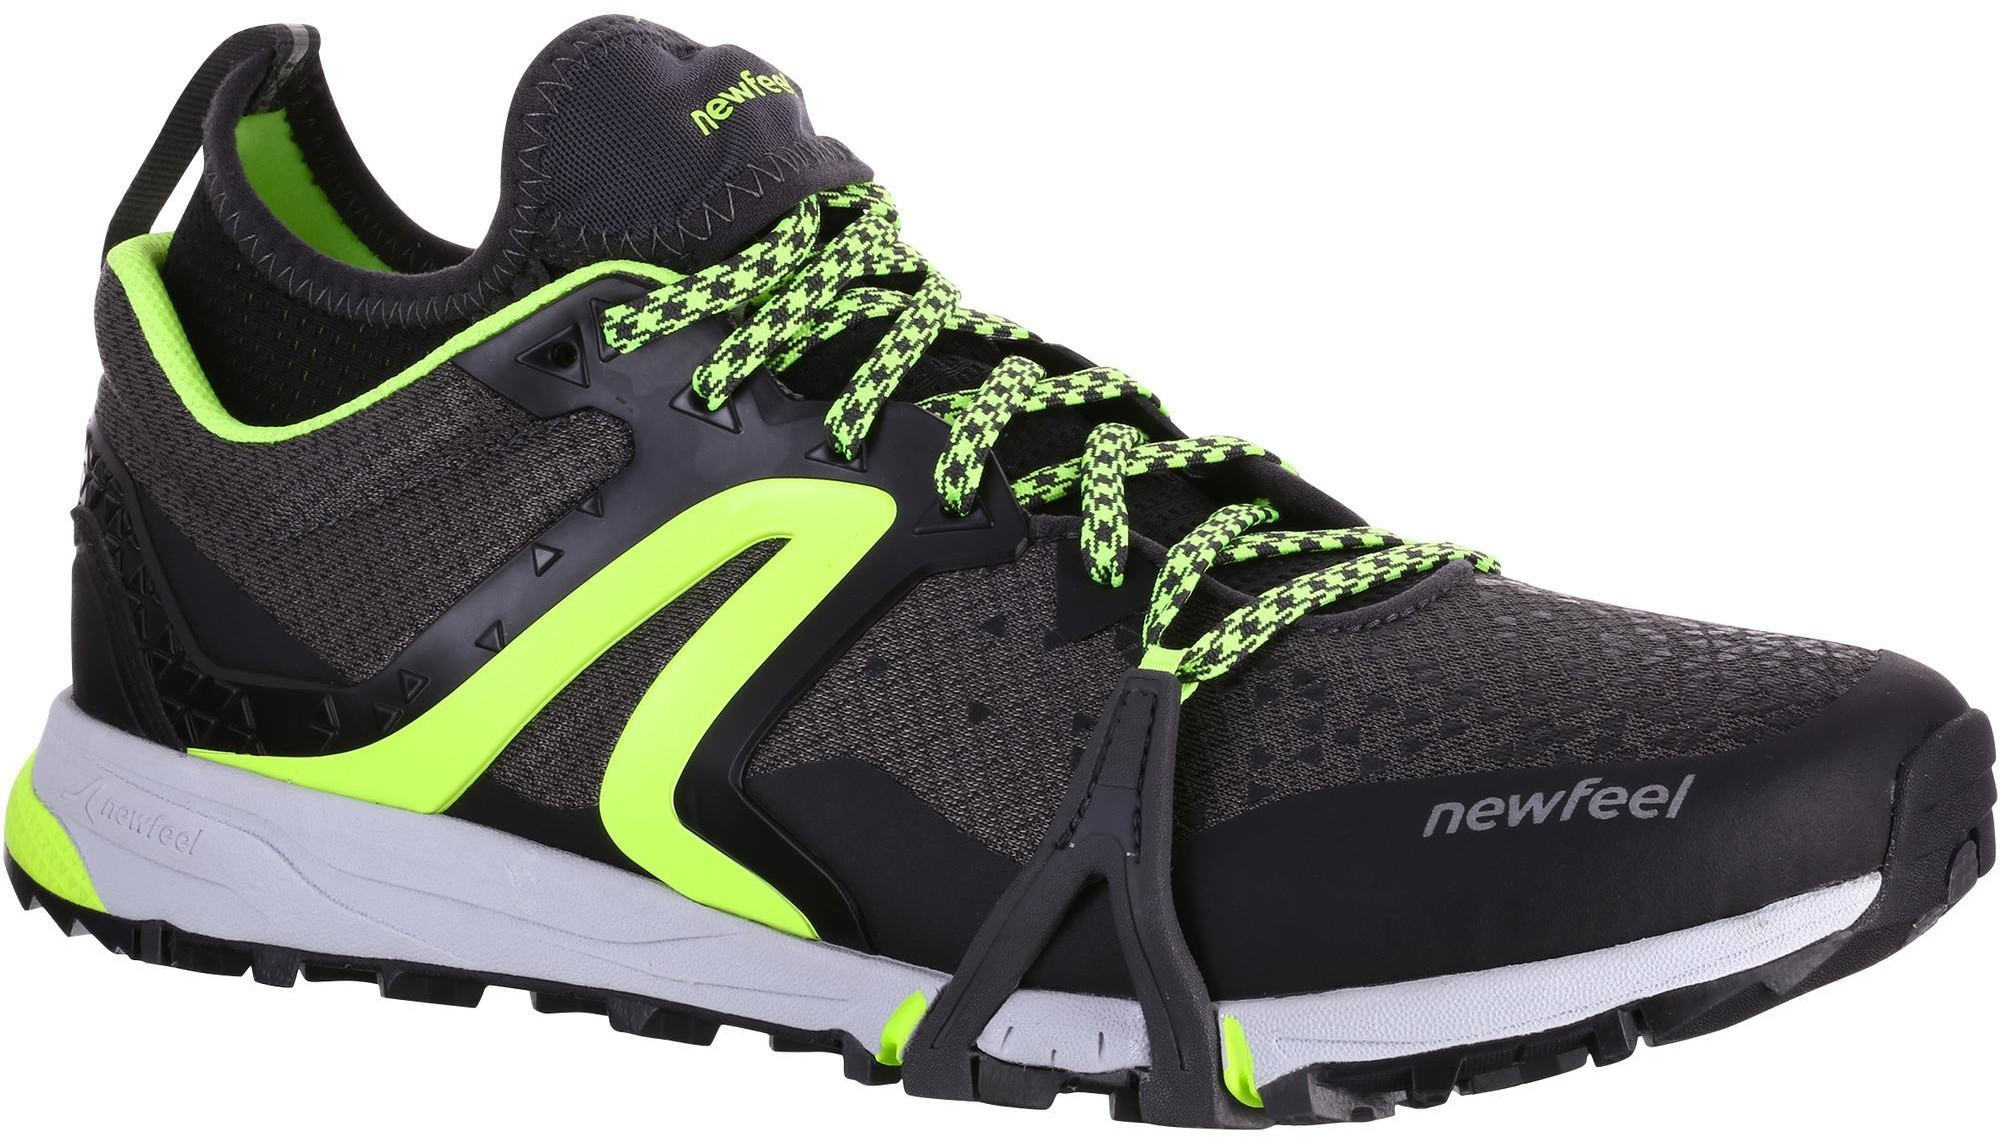 NEWFEEL Buty do nordic walking NW 900 Flex-H męskie male